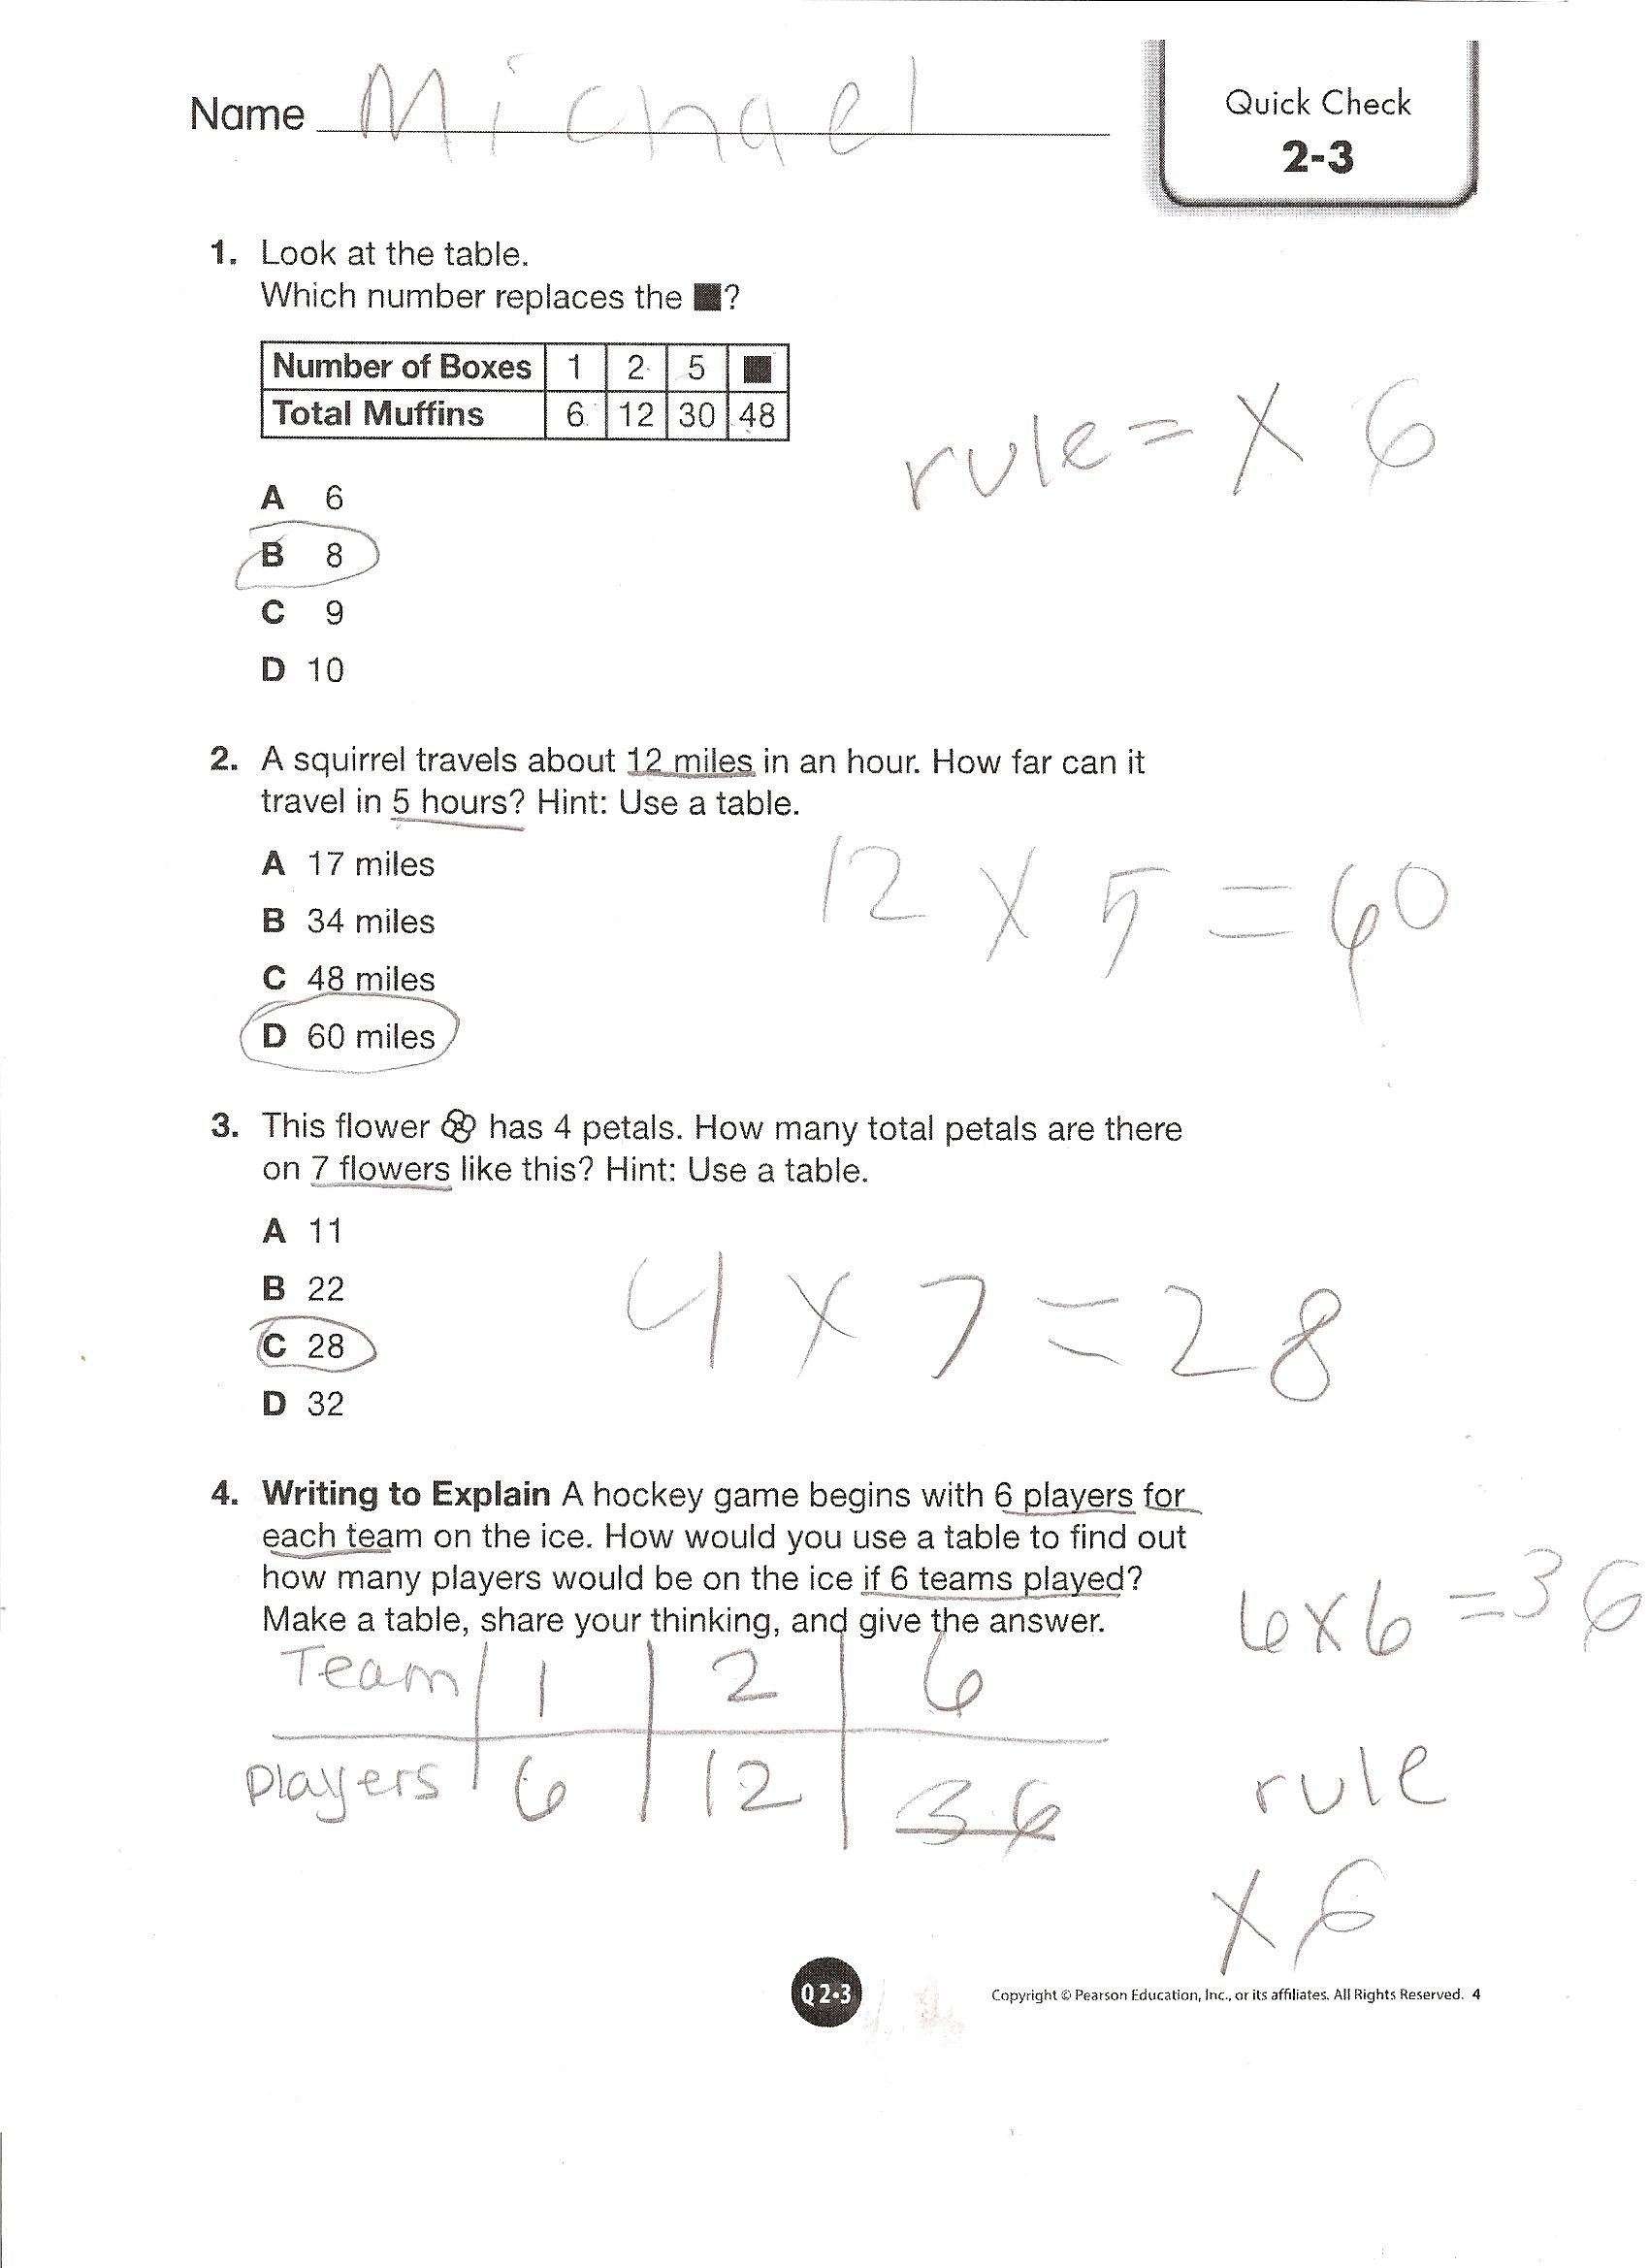 Envision Math Grade 4 Topic 2-3 Quick Check | Envision 4th Grade ...